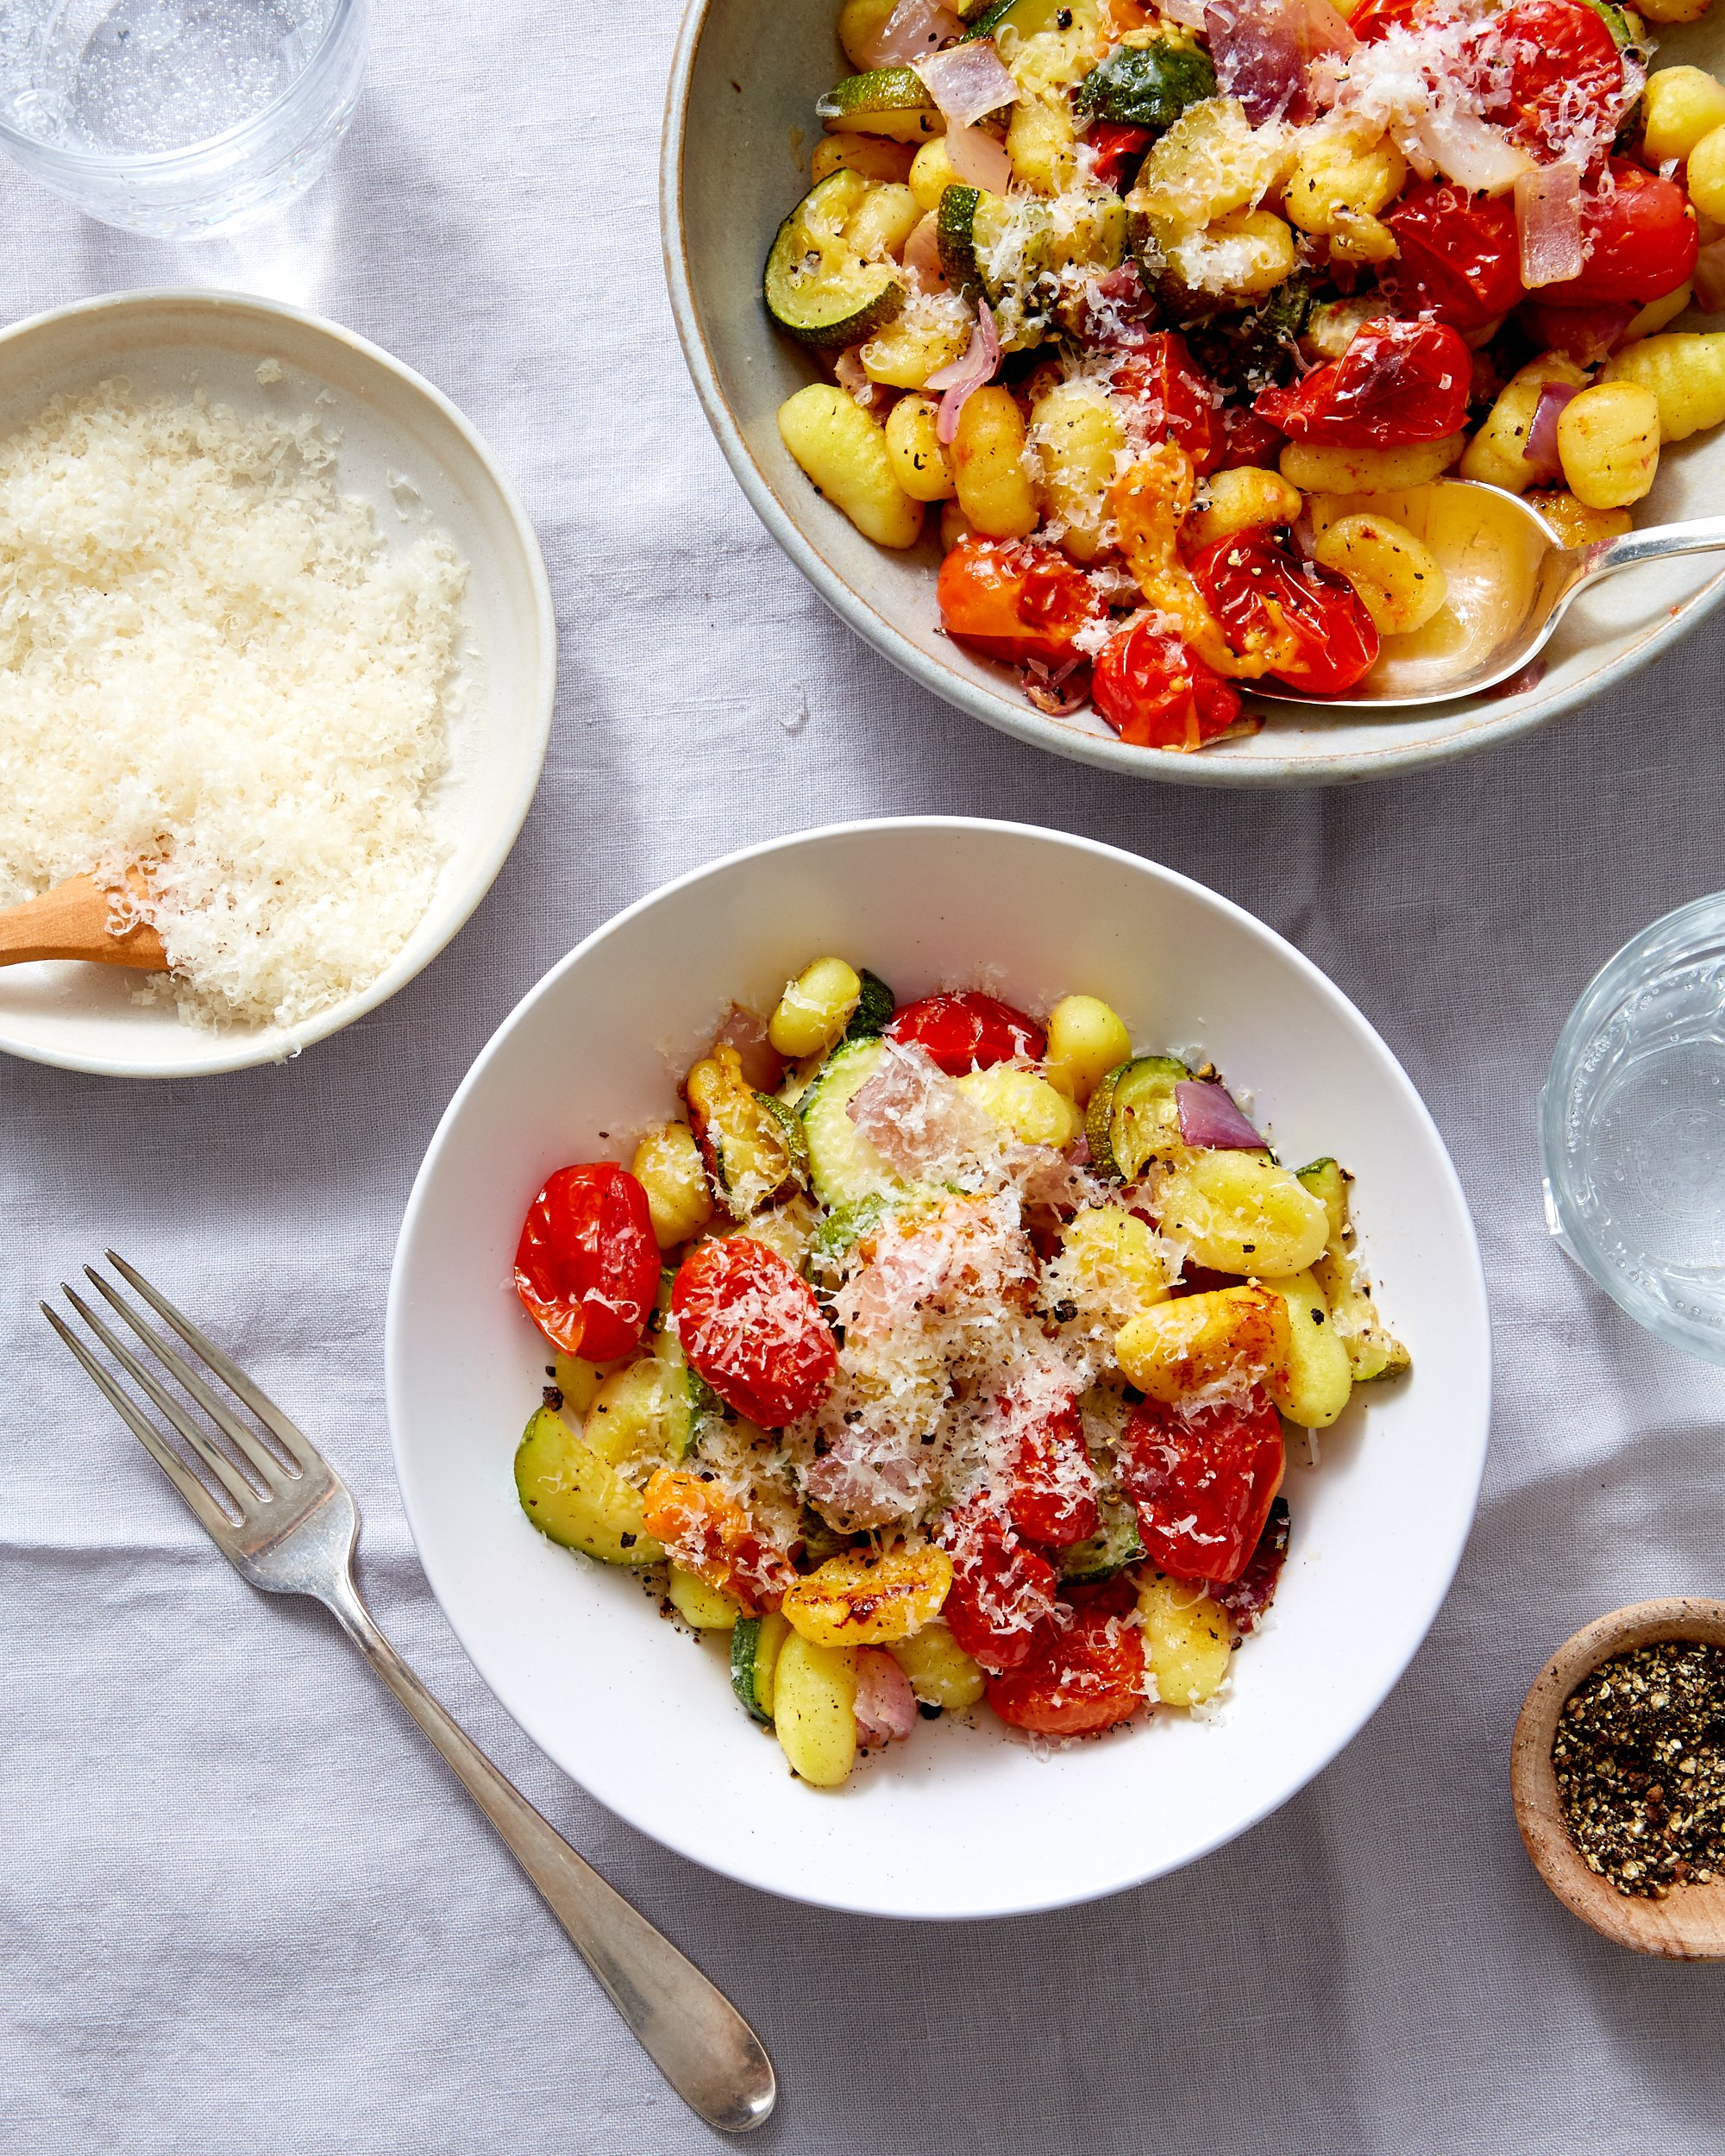 Roast Gnocchi with Tomatoes and Squash